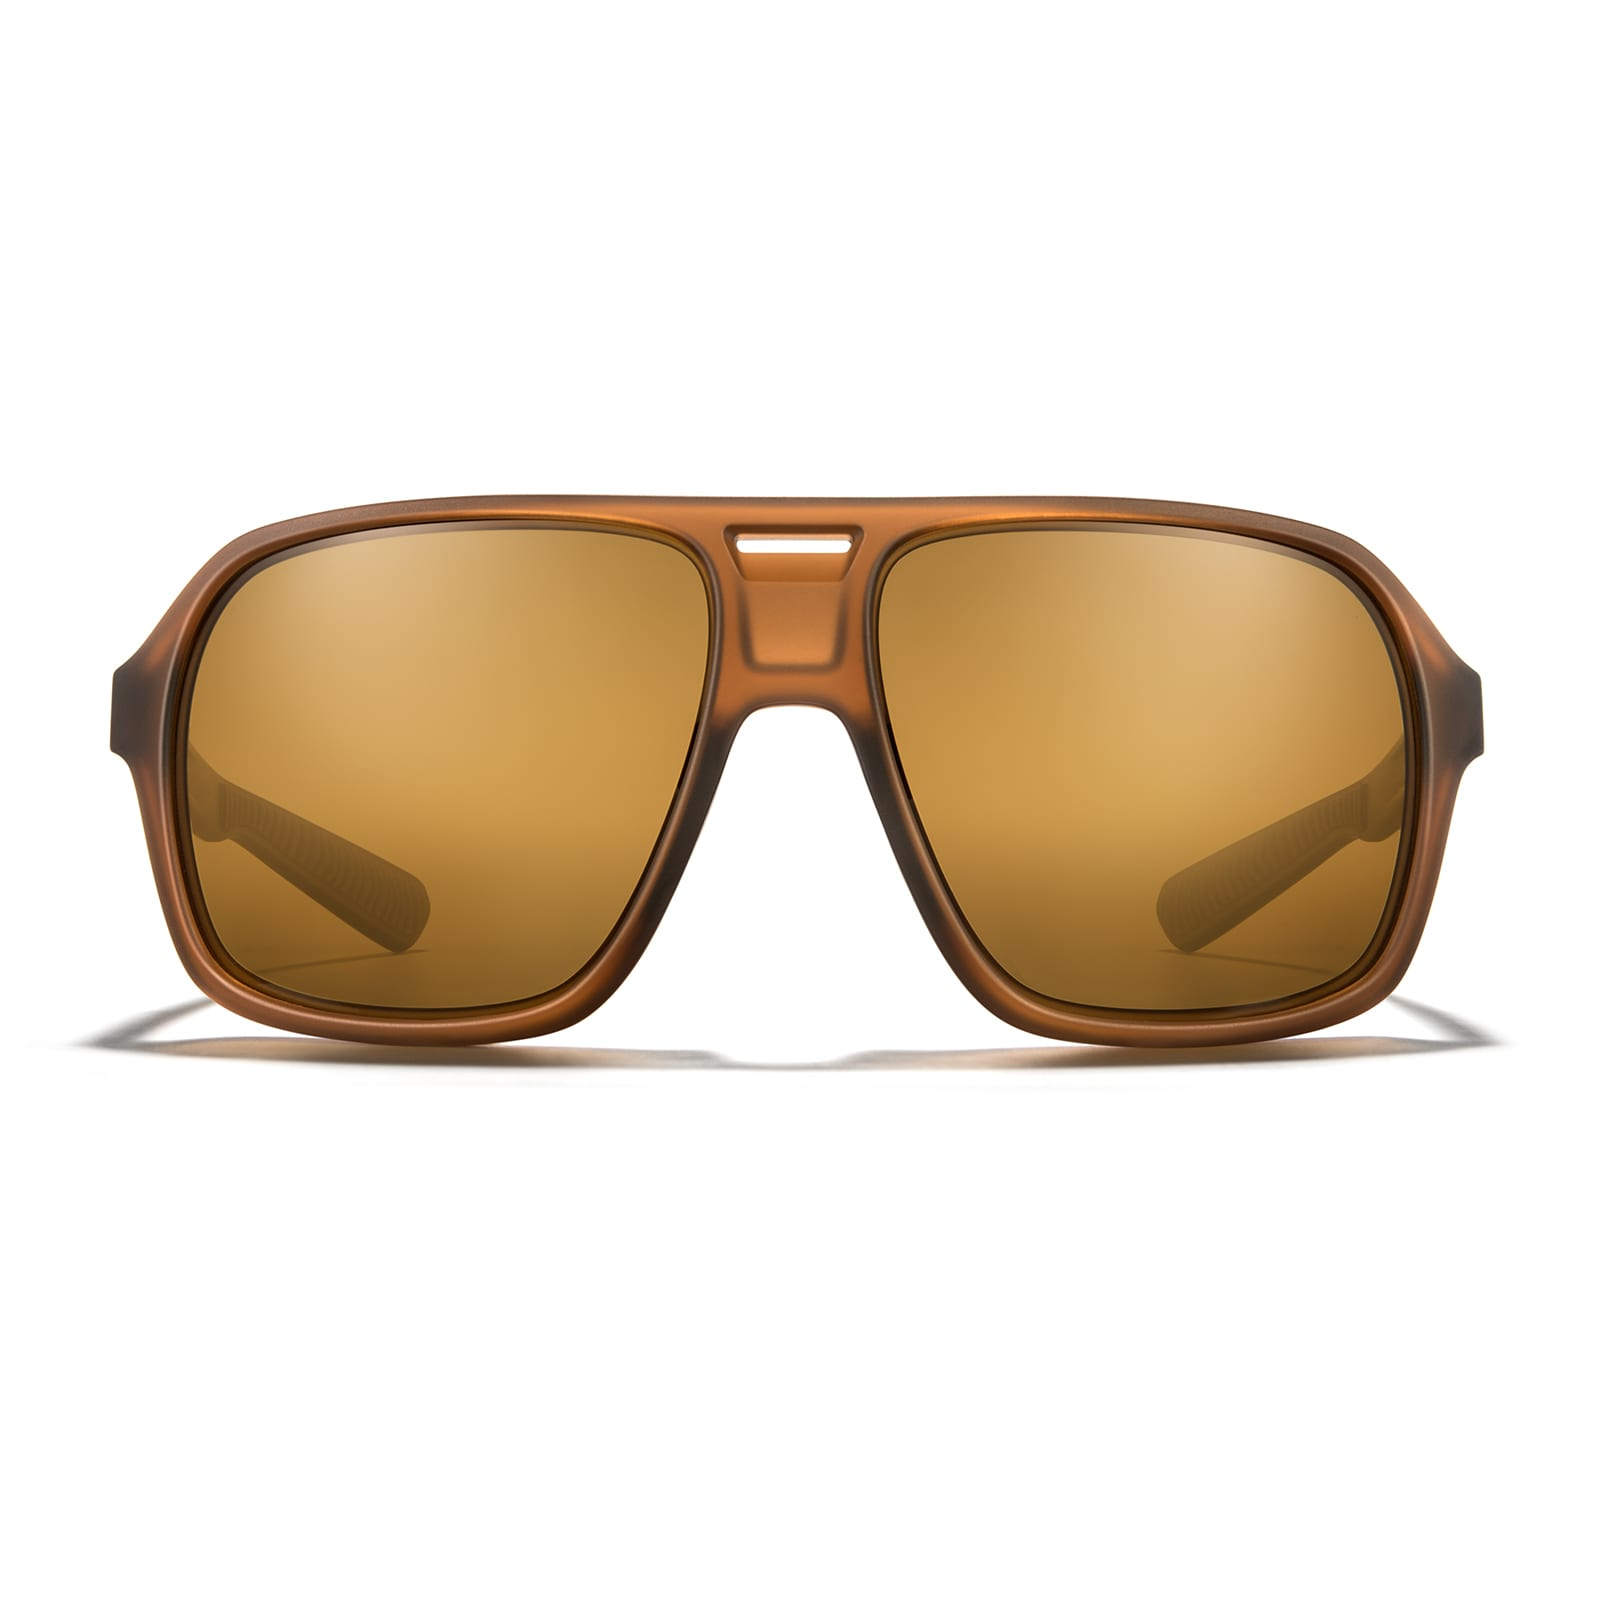 865be16a3d Torino Sunglasses - Retro Sunglasses - Polarized Sunglasses